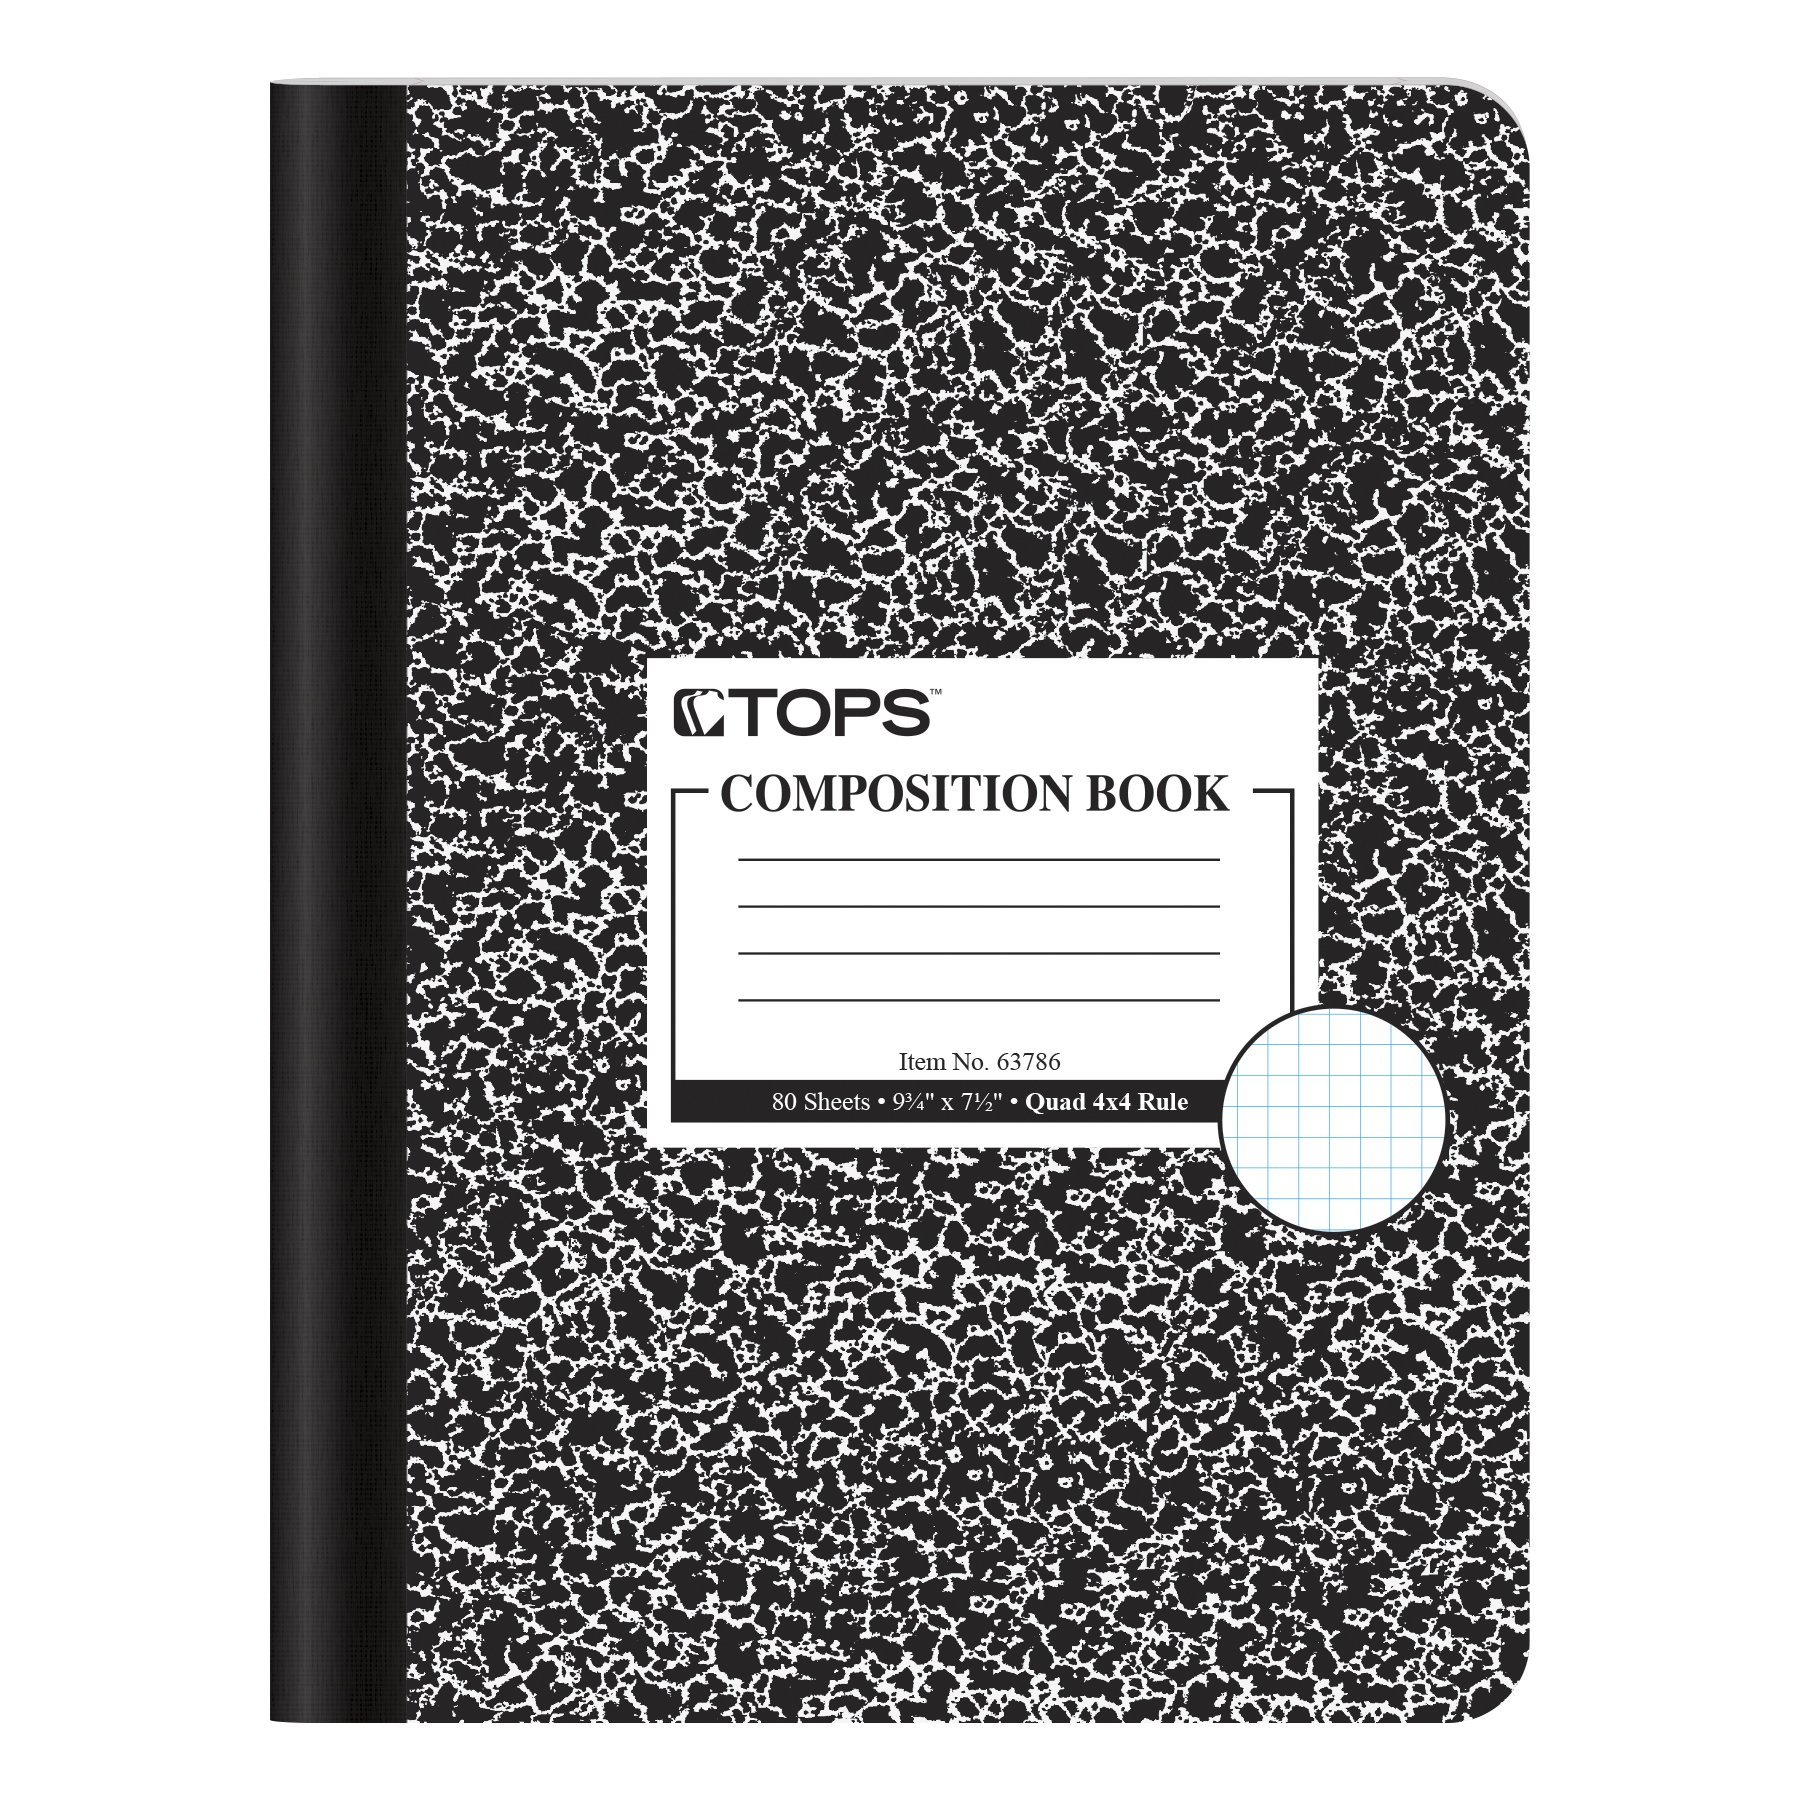 TOPS Composition Book, 9-3/4 x 7-1/2, Graph Rule, Black Marble Cover, 80 Sheets, Box of 12 Books (63786)